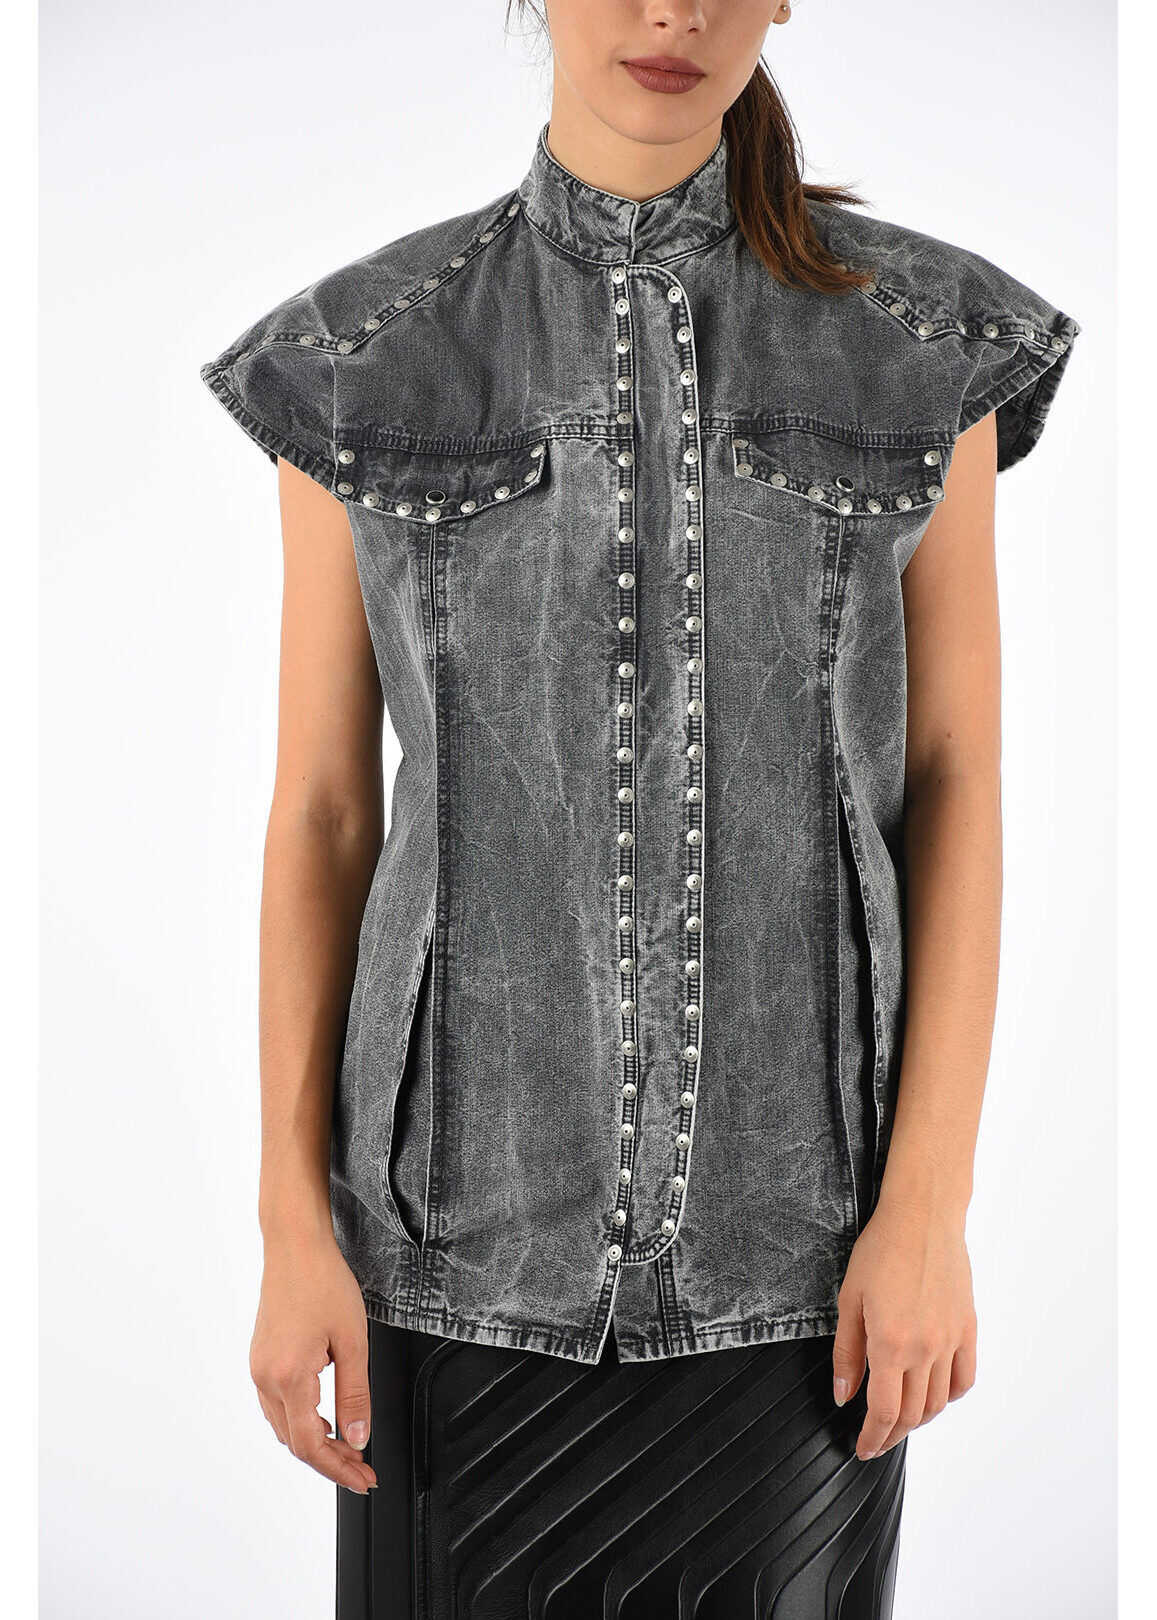 Givenchy Denim Sleeveless Jacket GRAY